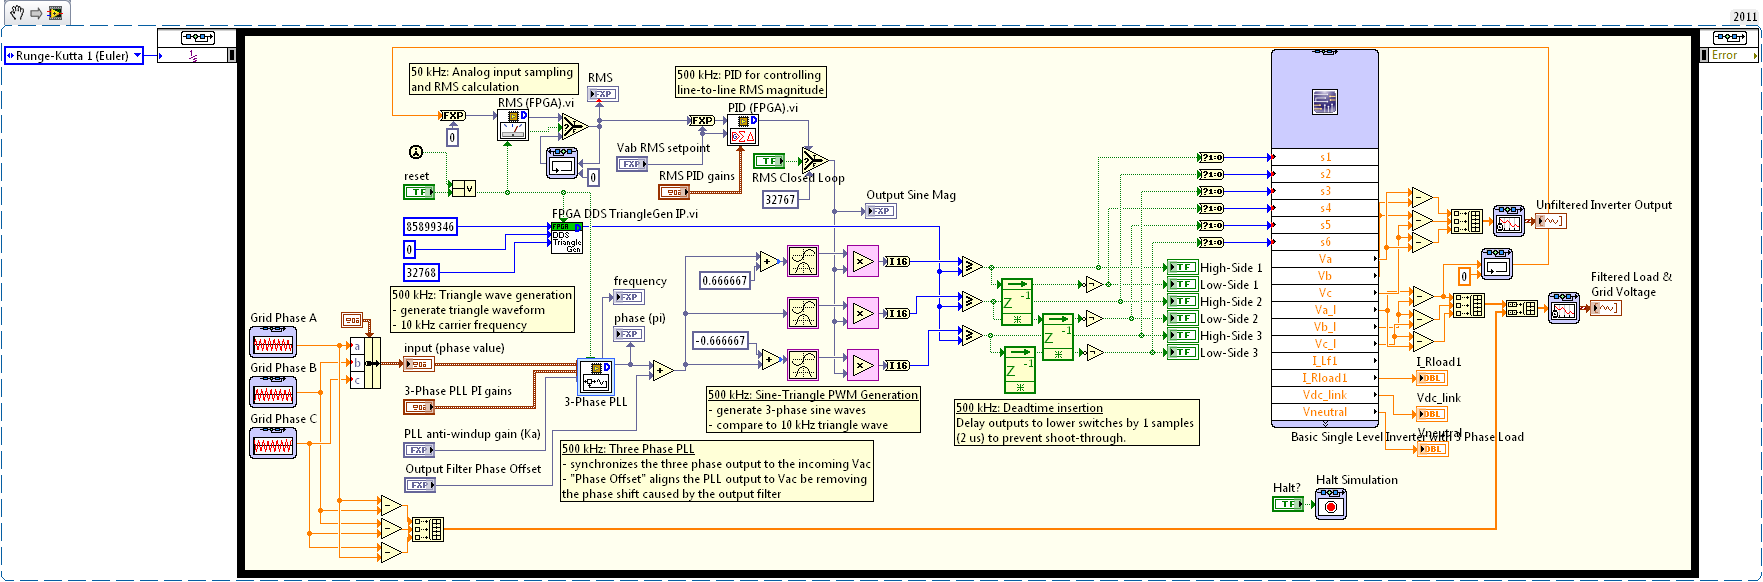 Generator Auto Start Circuit Diagram also Electrical Distribution Systems For also Watch furthermore Qo Load Center Wiring Diagram furthermore 220v Single Phase To 380v 3 Phase Power Supply 2436014. on single phase generator wiring